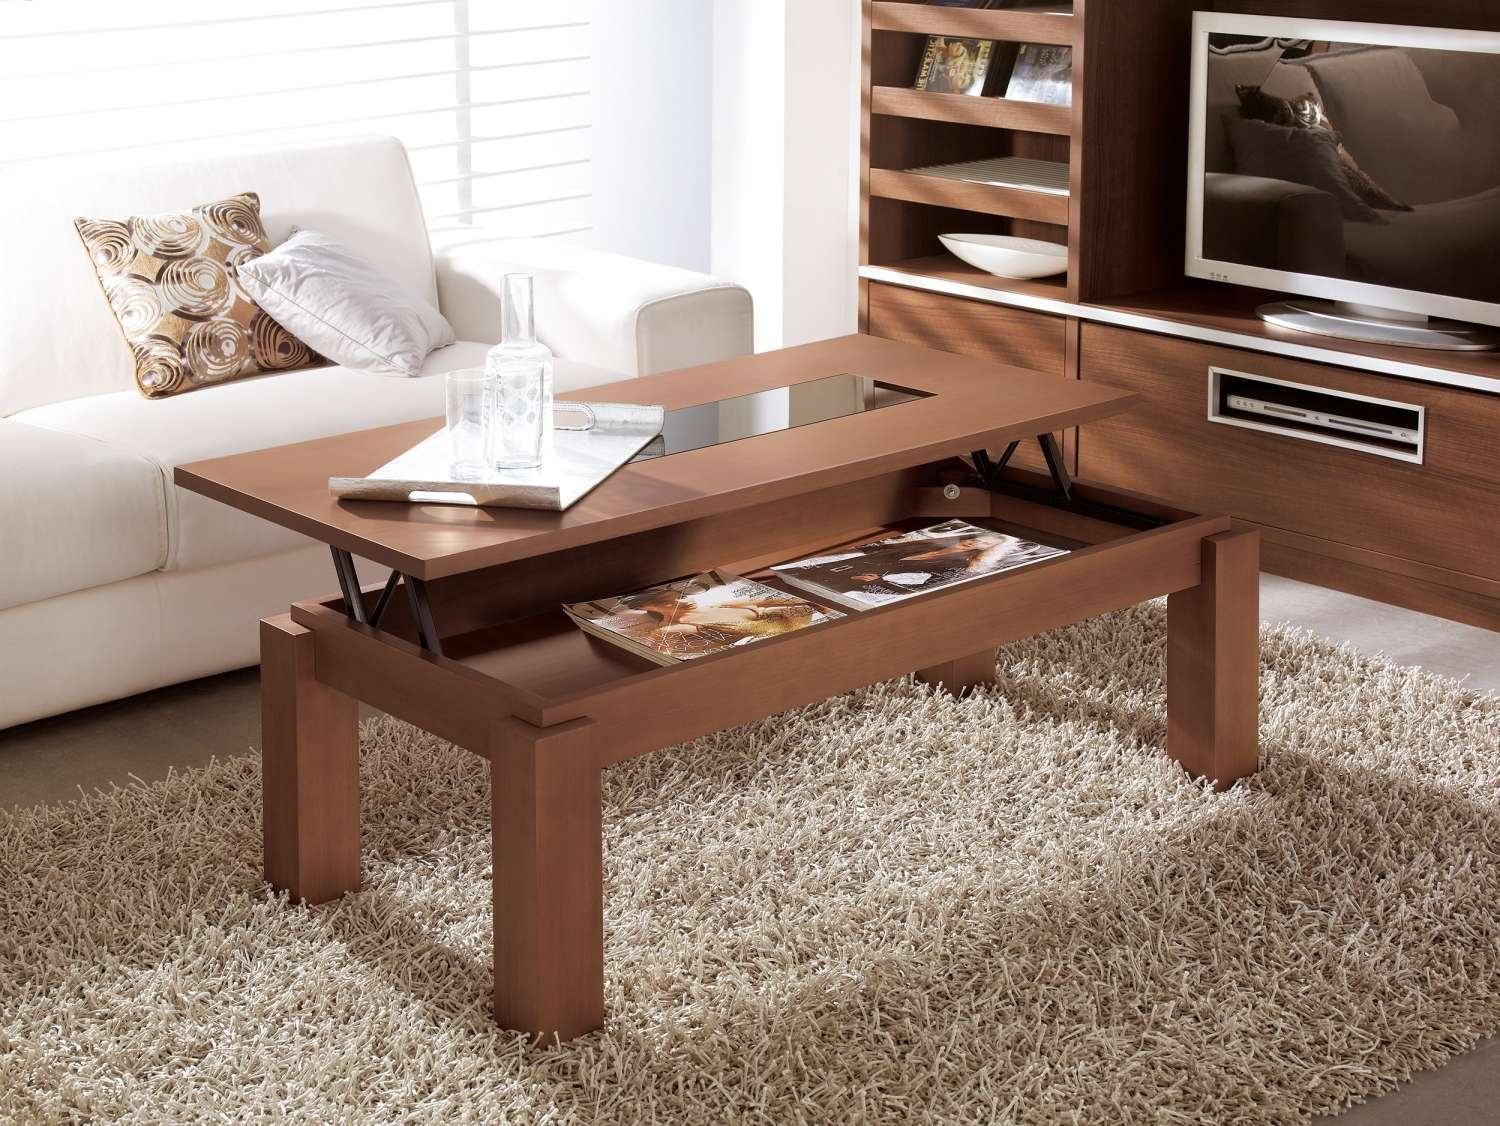 2017 Pull Up Coffee Tables For Coffee Tables : Simple Coffee Table Lift Up Wellington Glass Pop (View 3 of 20)